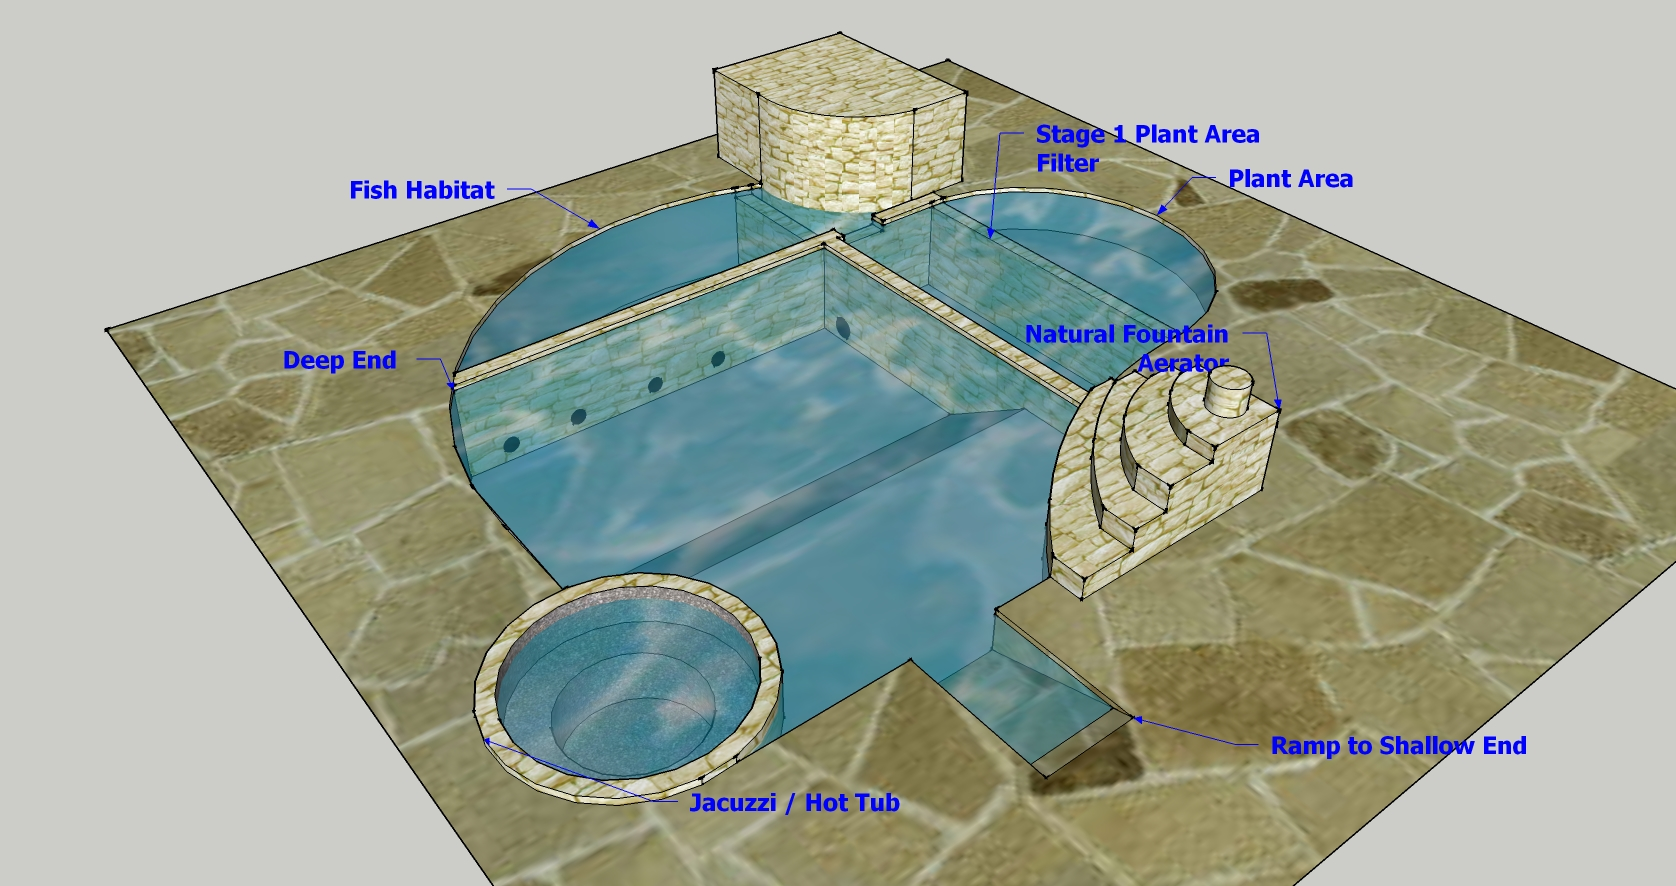 Eco friendly pool designs solar heating and bio filter interior - Eco Friendly Pool Designs Solar Heating And Bio Filter Interior Natural Swimming Pool Design View Download